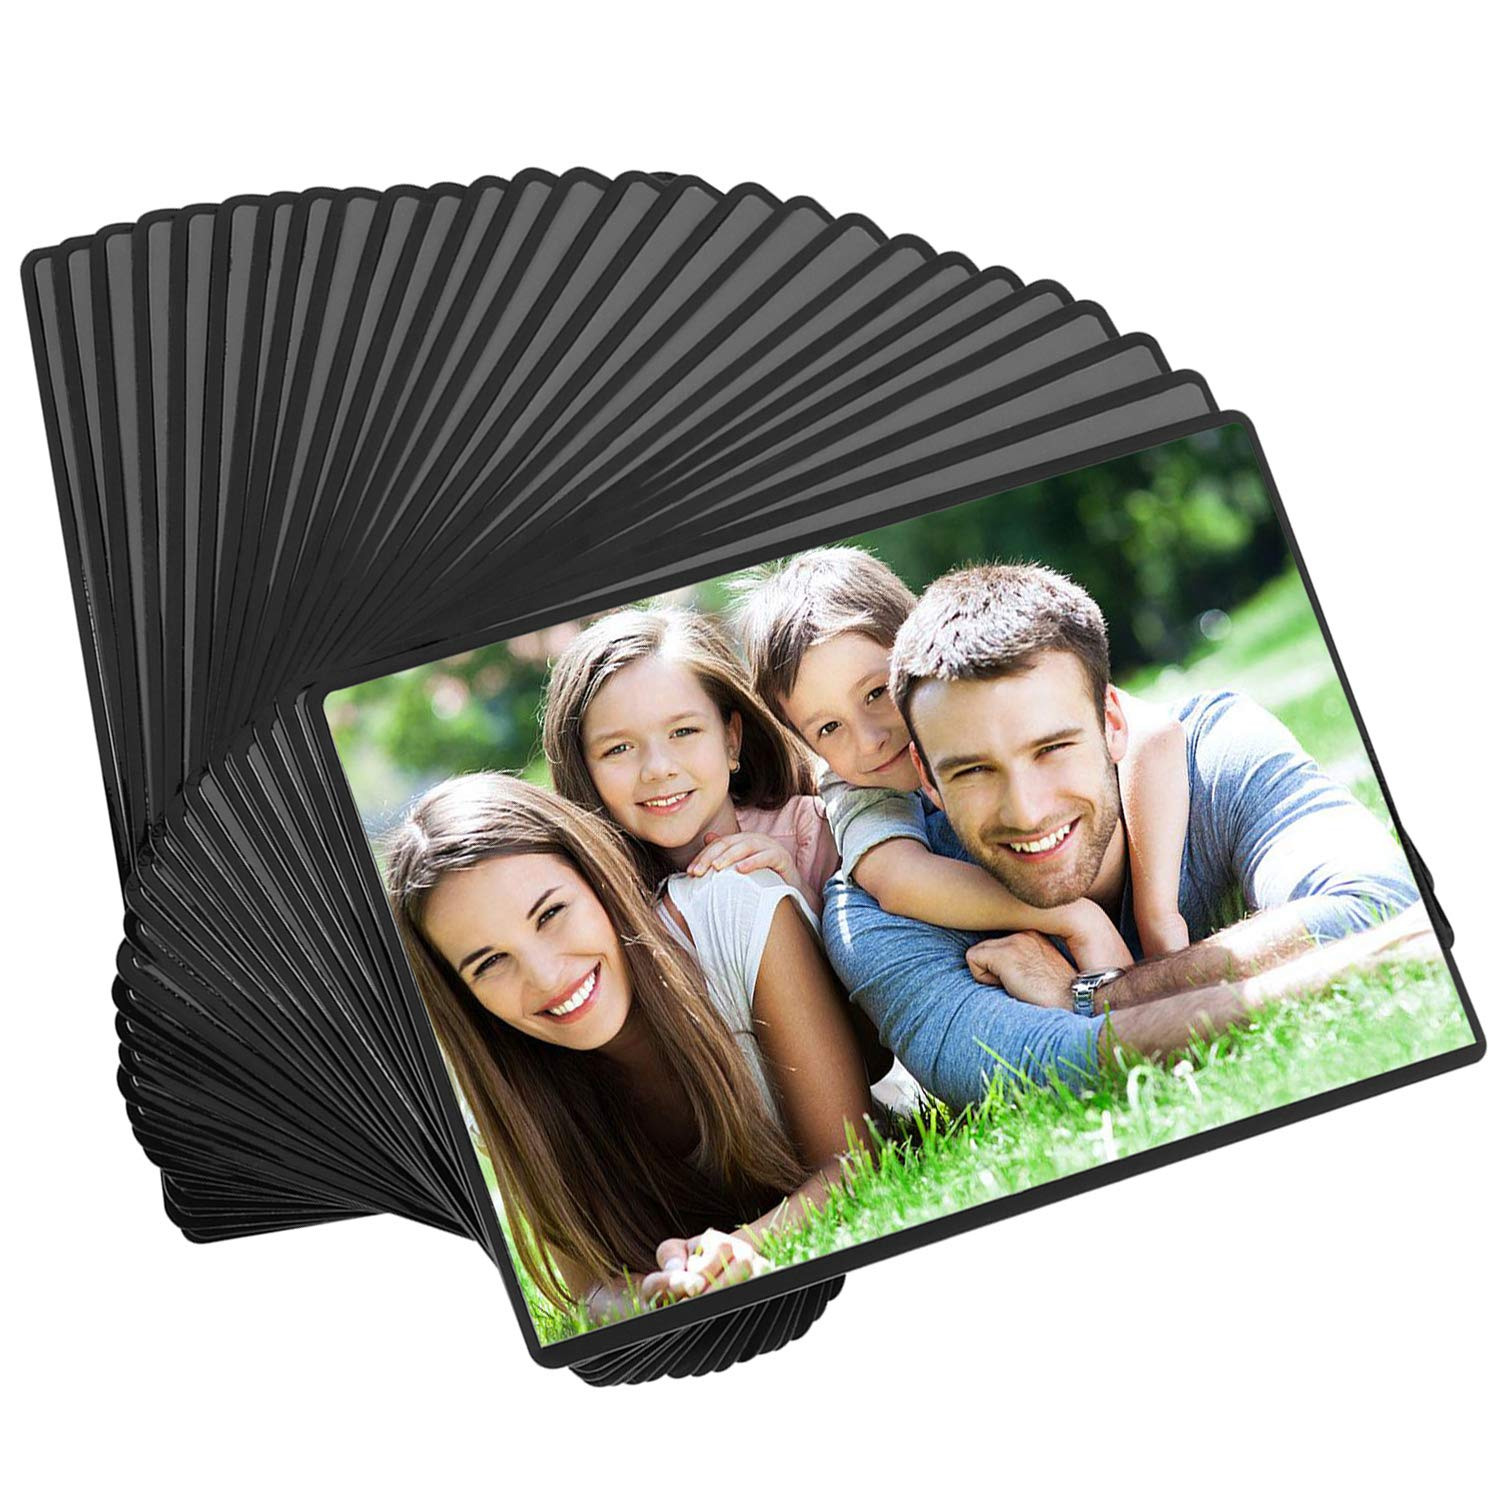 Magicfly Magnetic Photo Frame, Pack of 30, Fits 4 X 6 Inch Photos, Magnetic Picture Frame with Clear Photo Pocket for Refrigerator, Fridge, Office Cabinet, Black by Magicfly